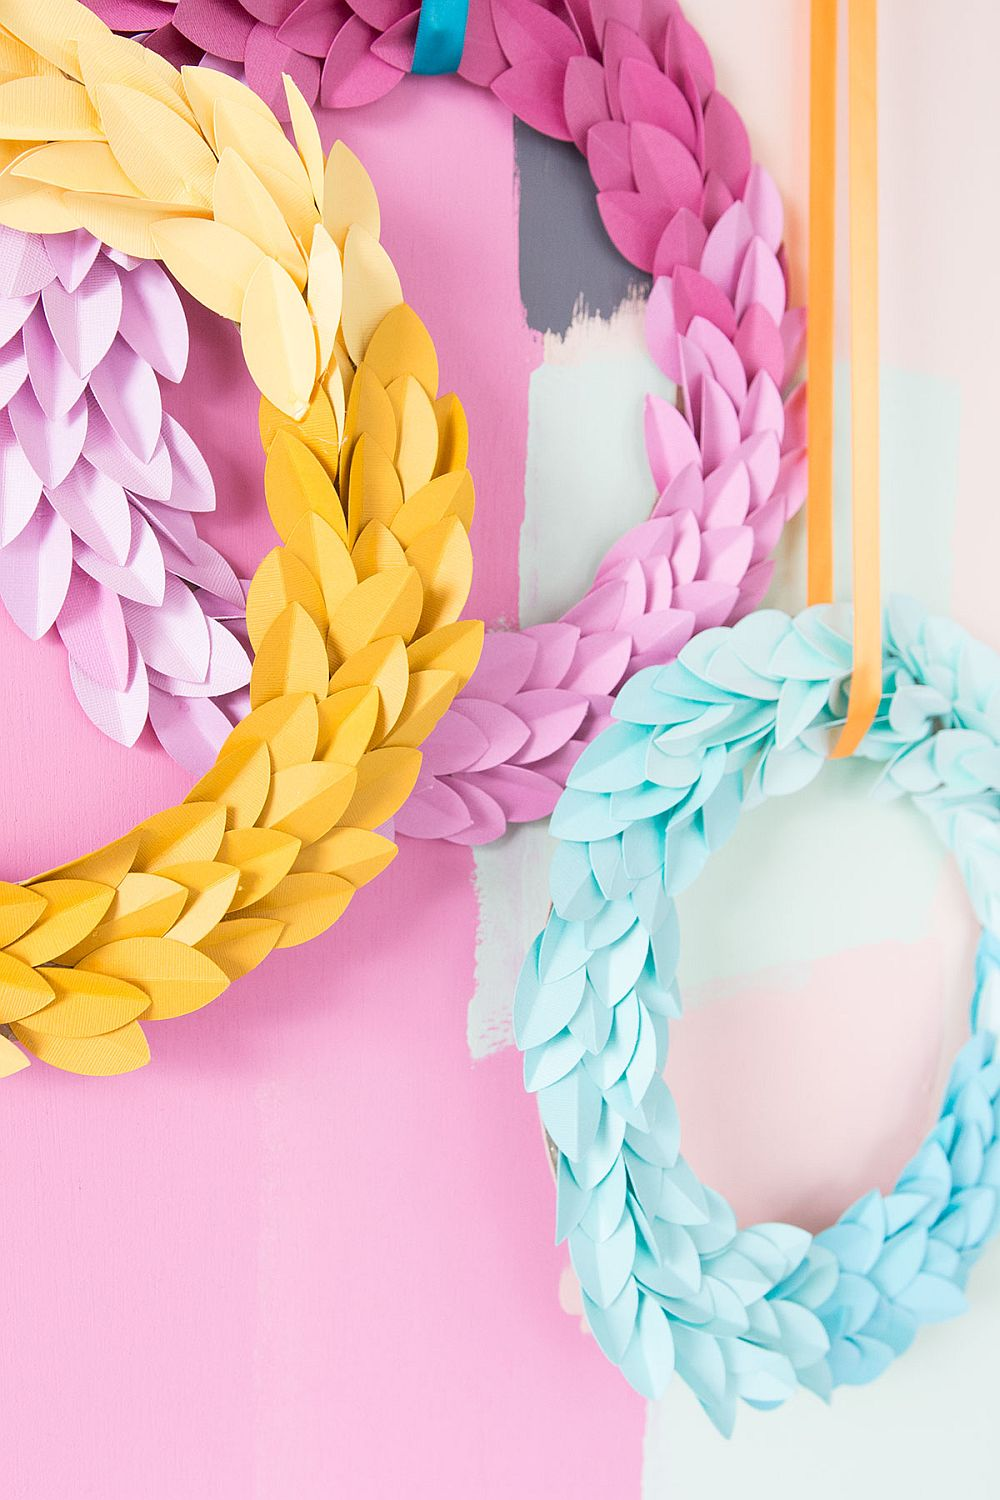 Closer look at the paper leaf ombre wreaths